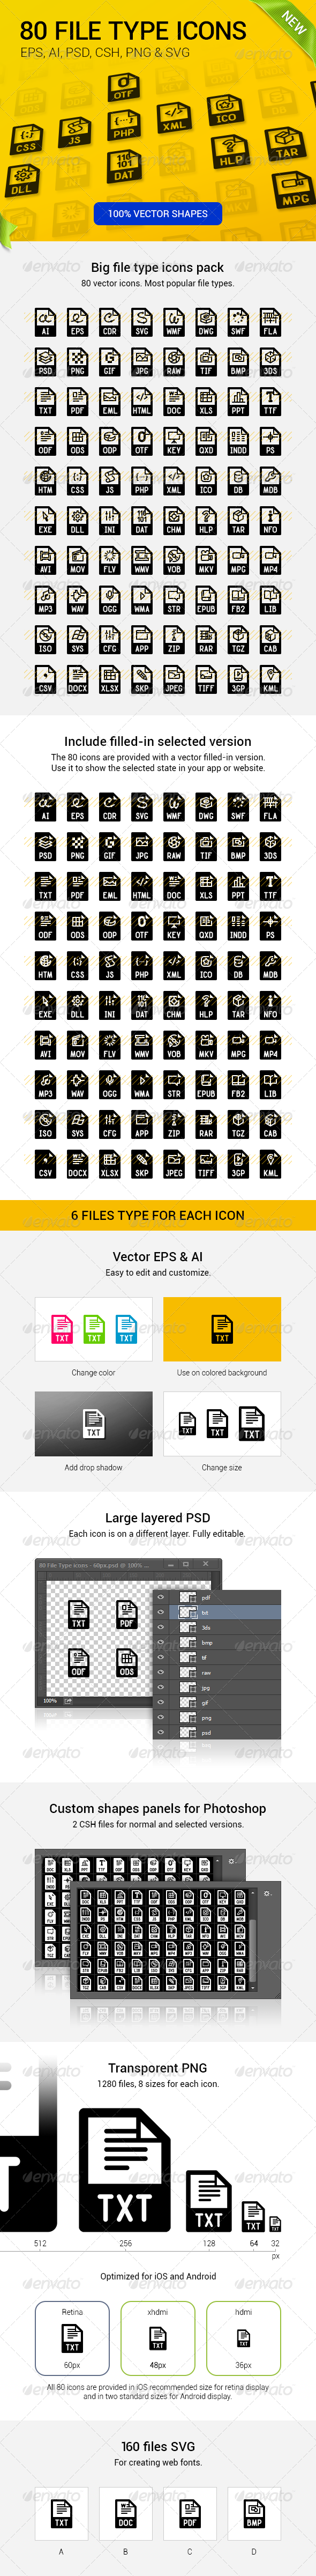 GraphicRiver 80 File Types Icons 8470014